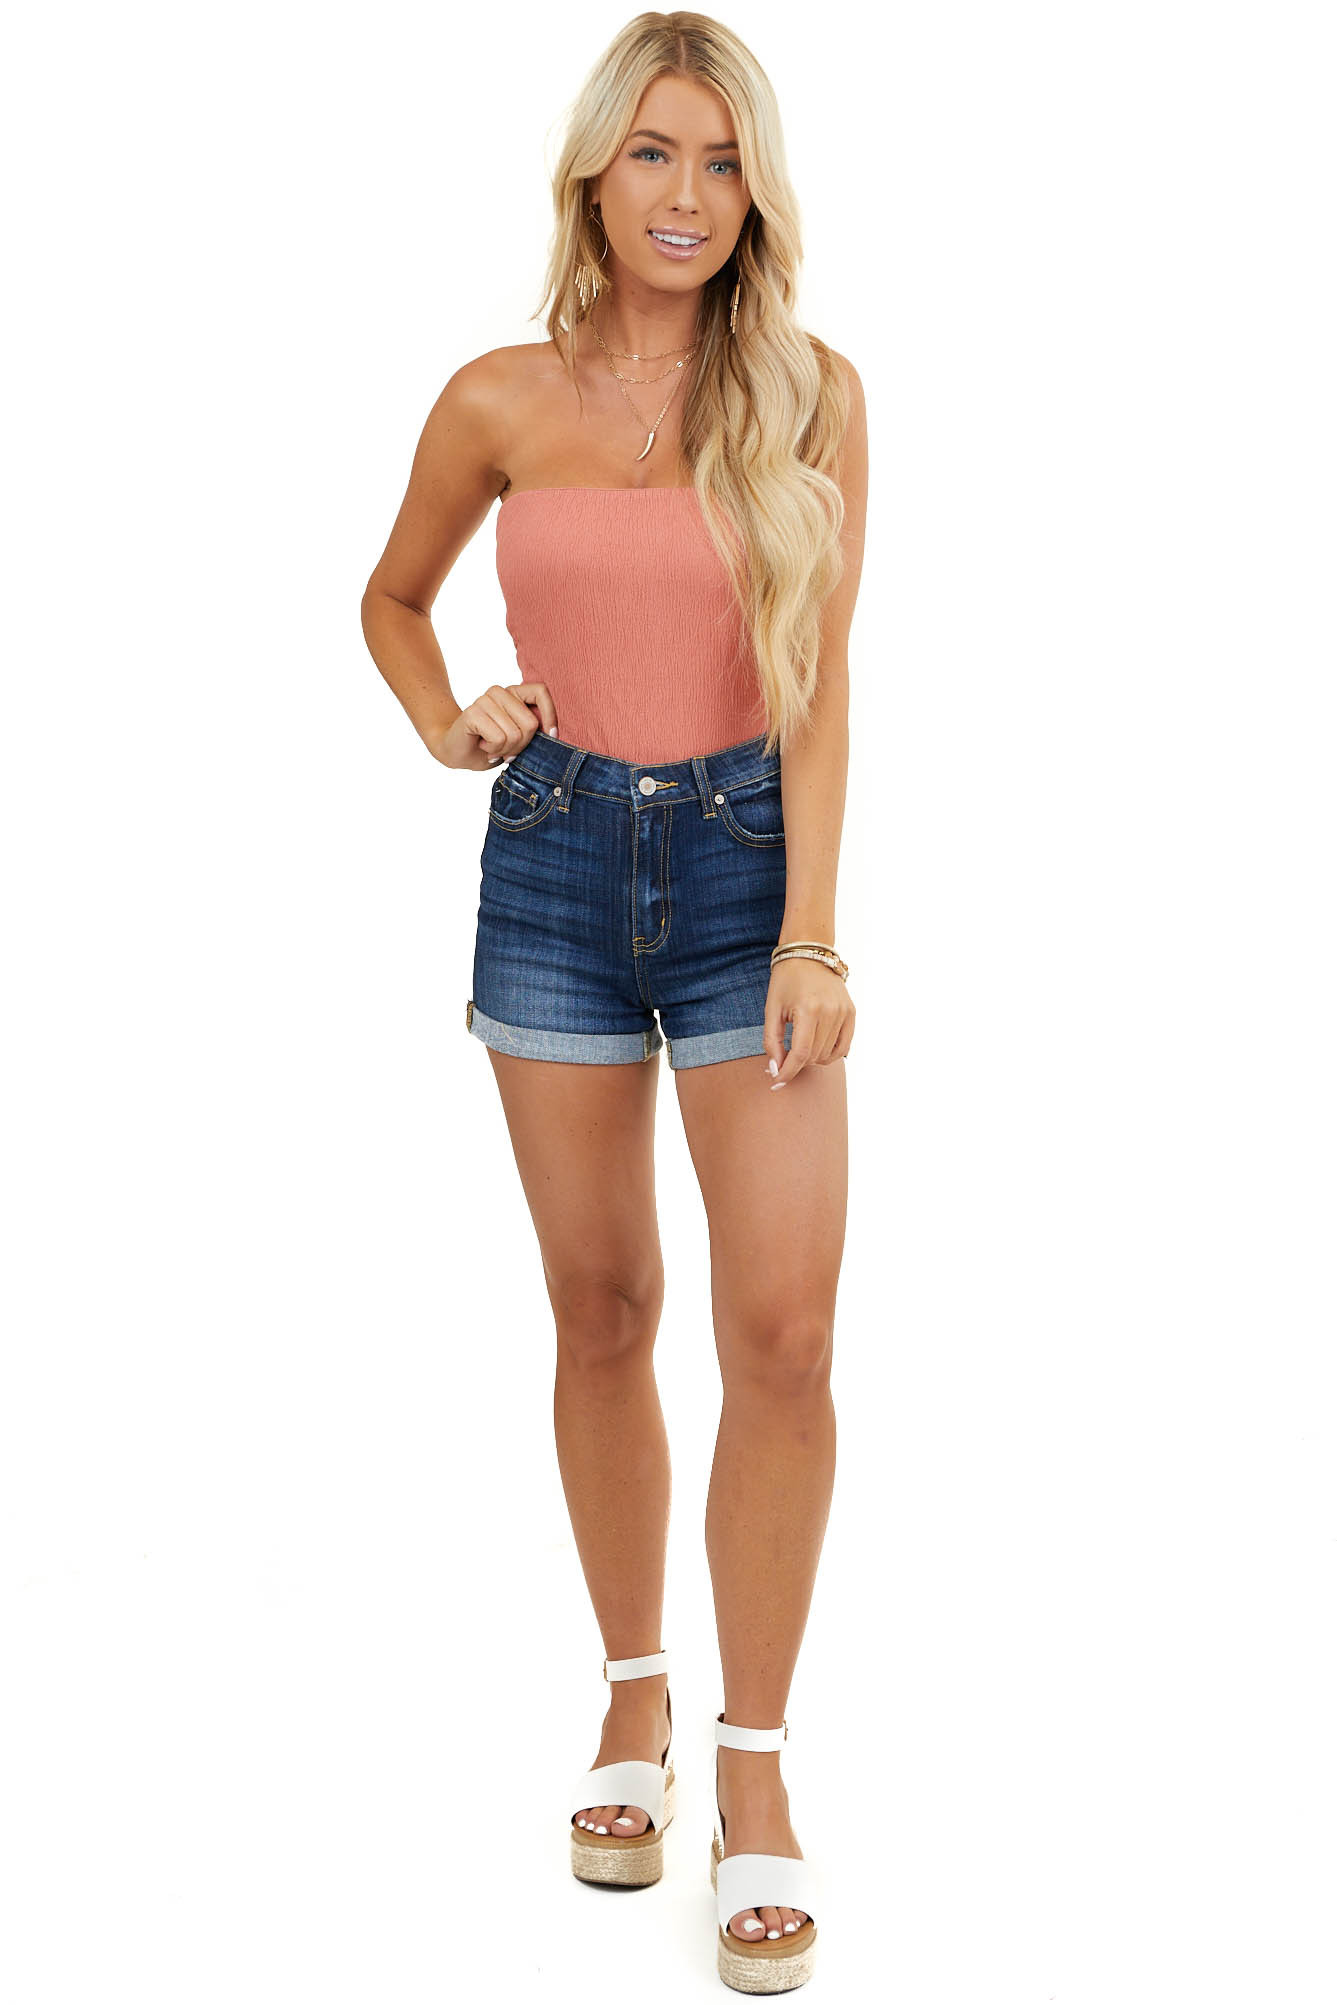 Dusty Salmon Strapless Textured Knit Bodysuit with Back Tie